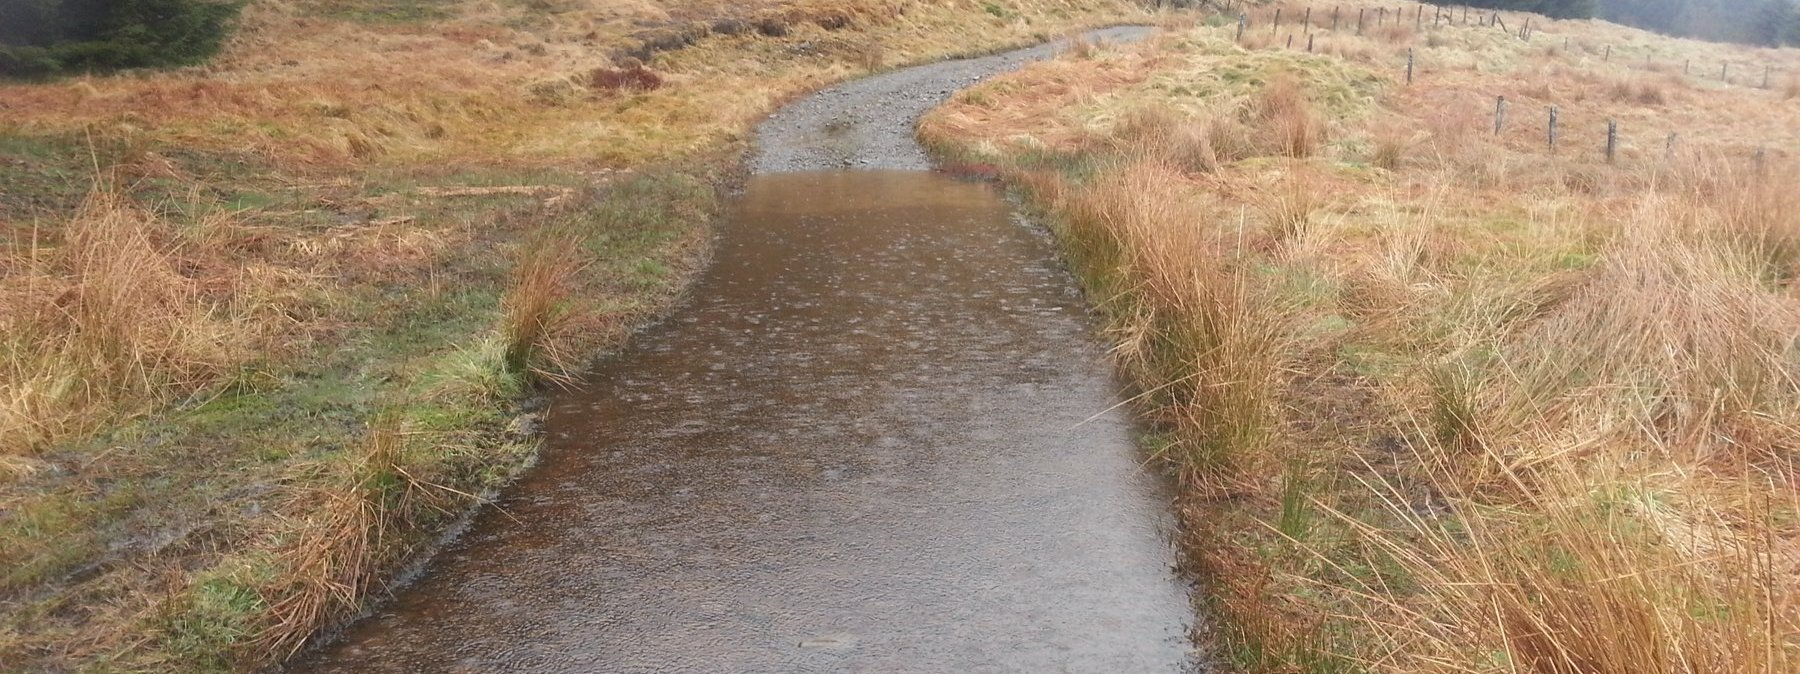 Water-logged road as I rejoin the tarmac